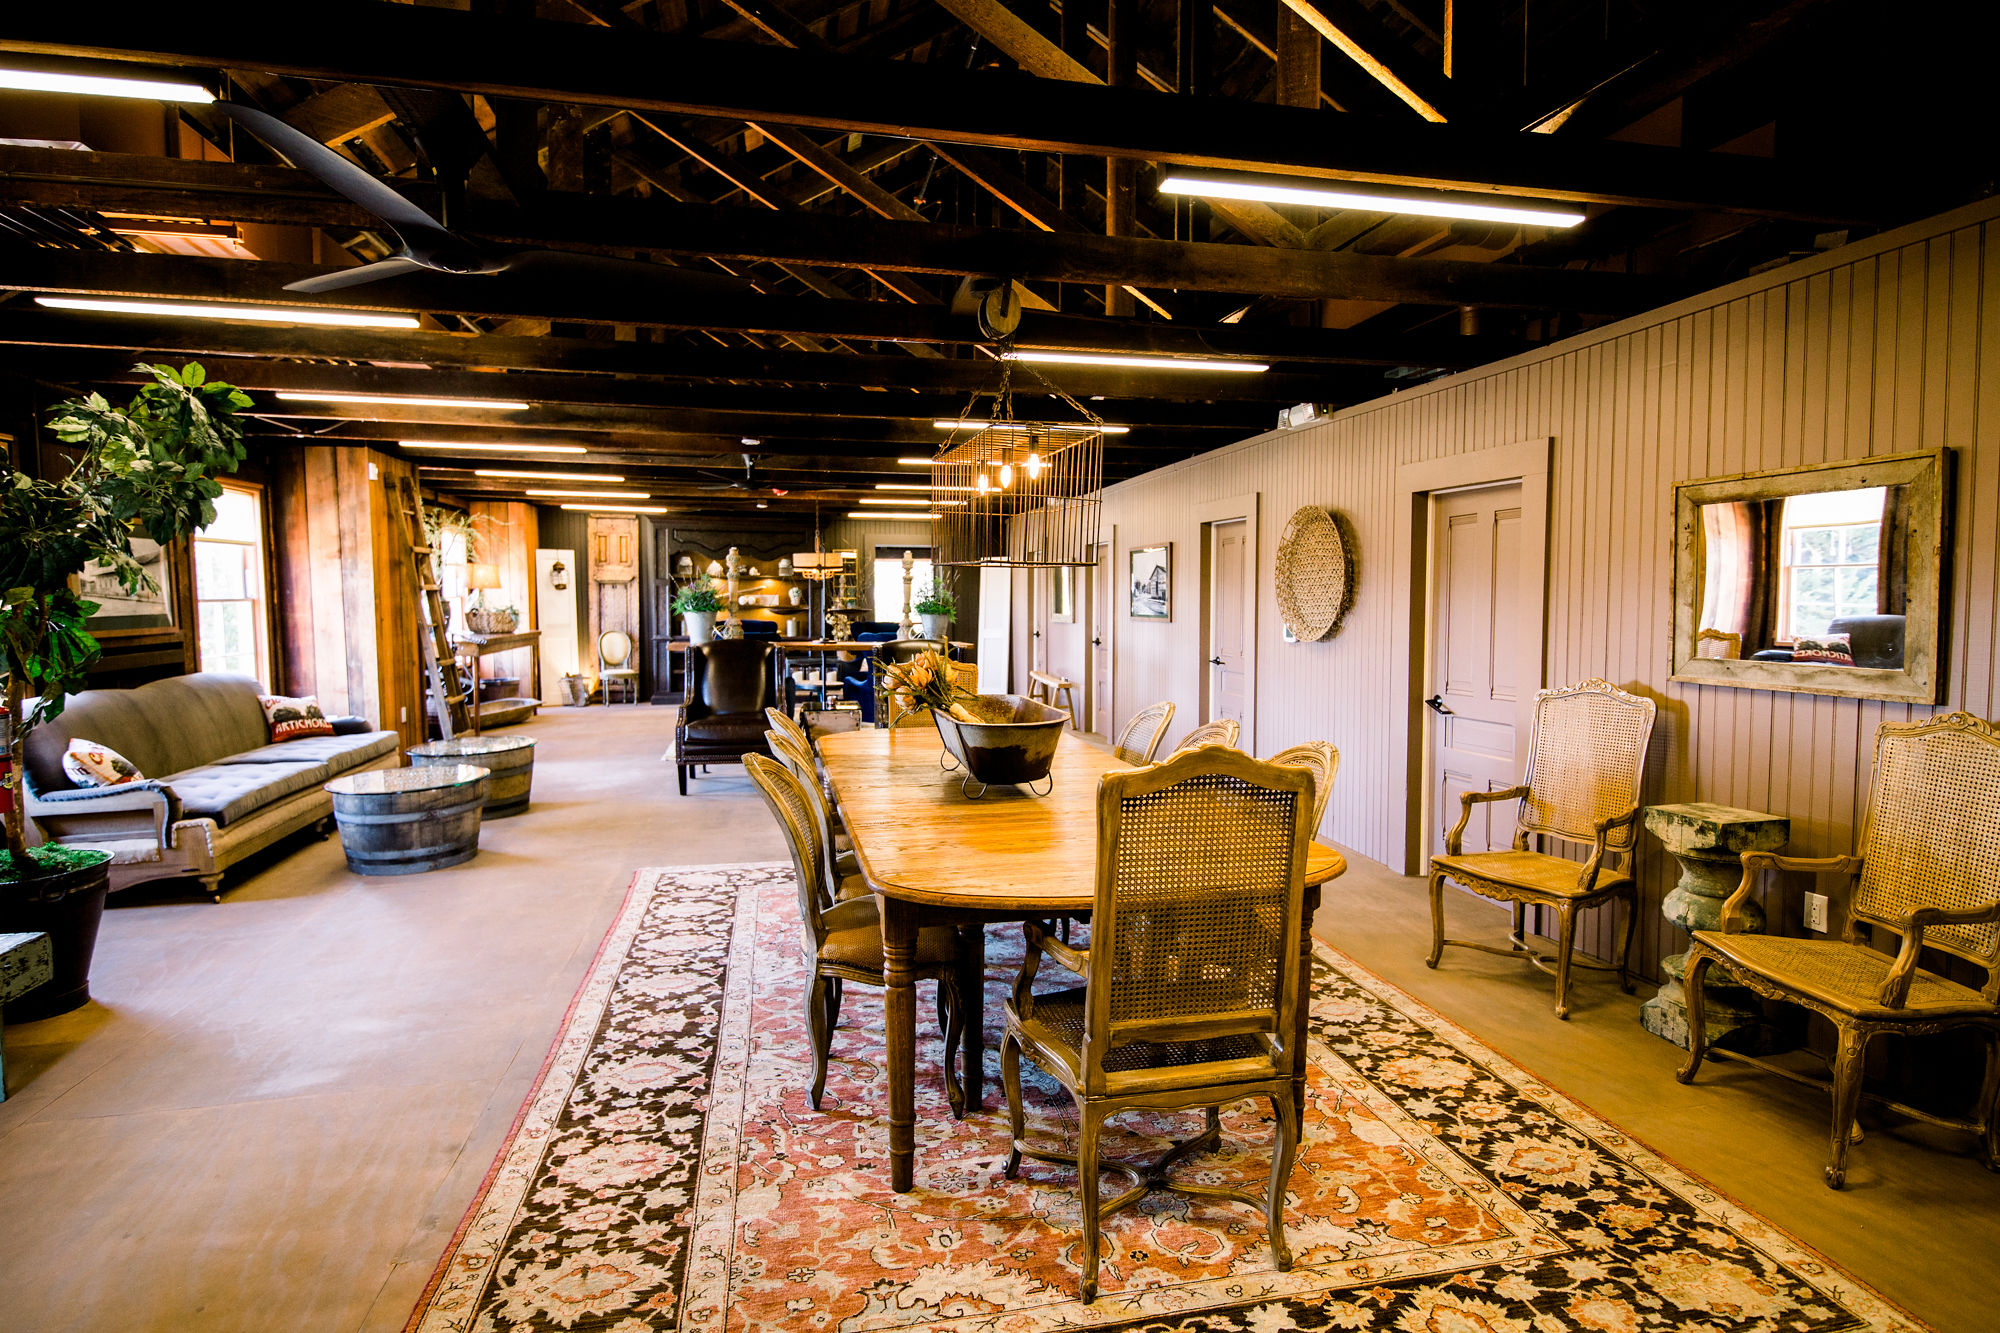 VIP Loft at The Barns Event Center in Monterey